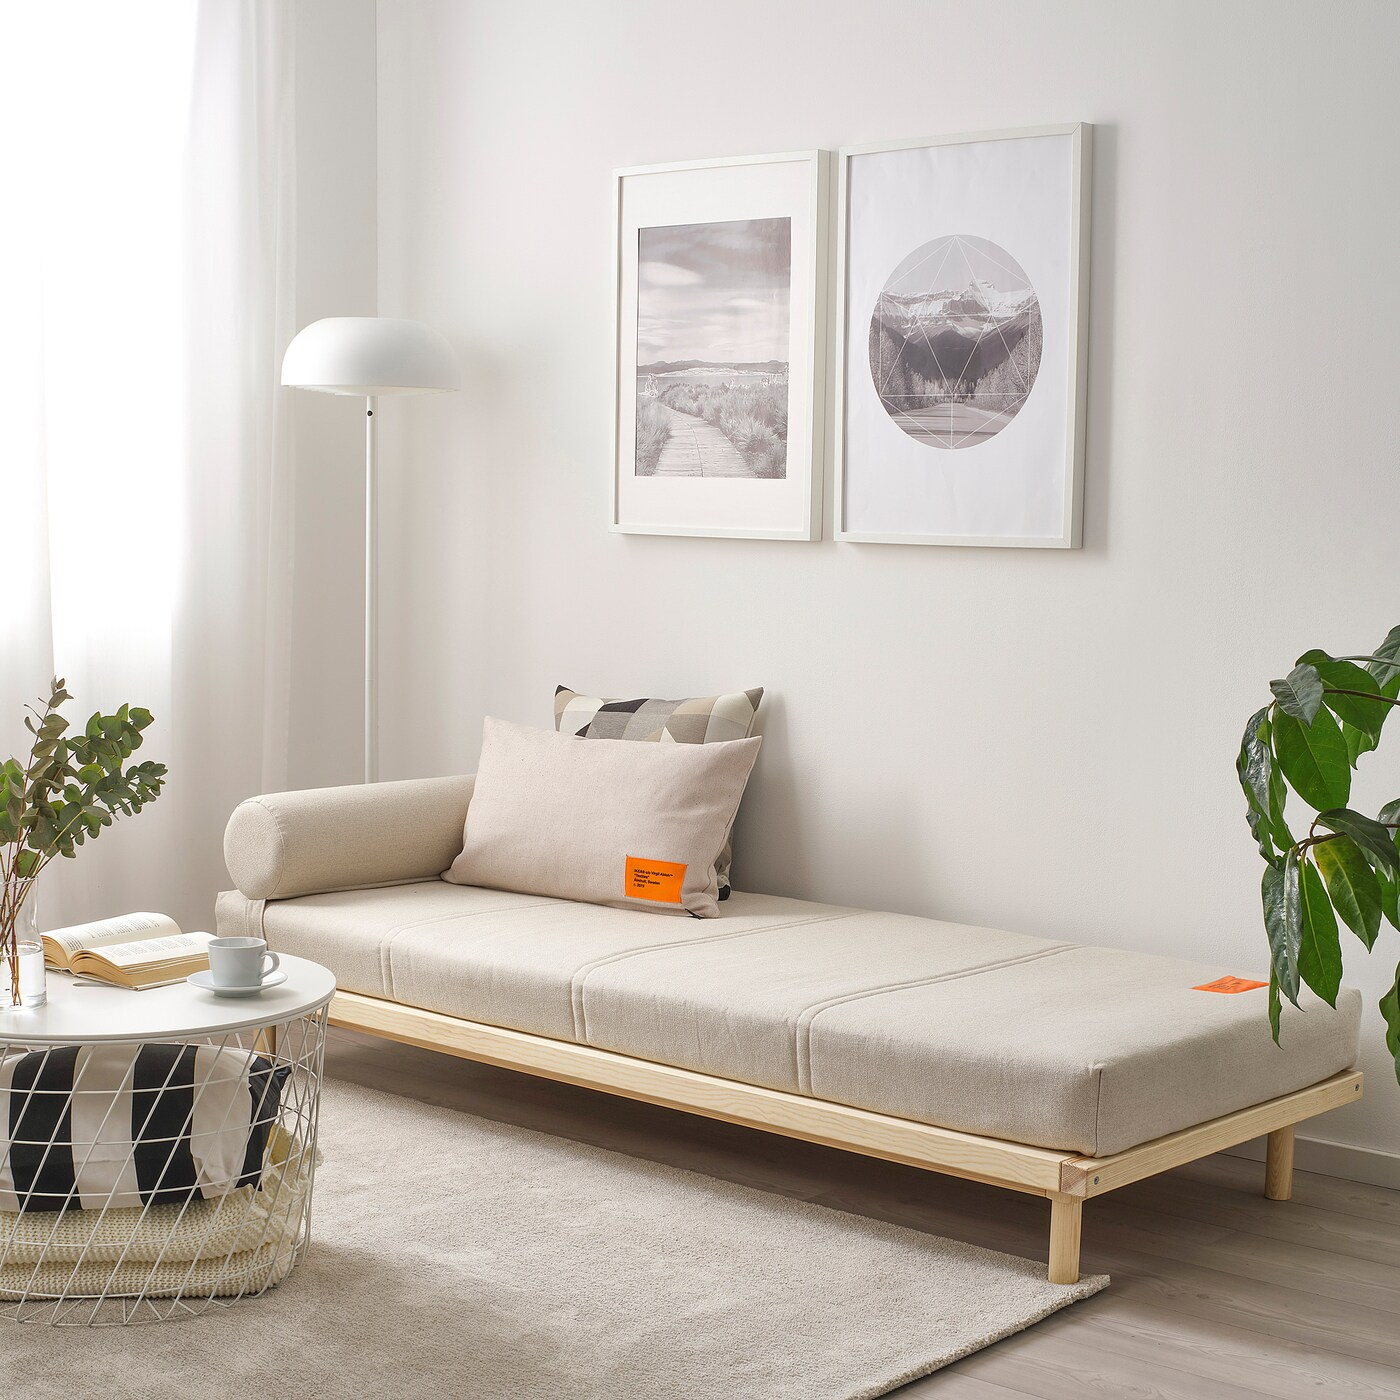 The 10 Best Daybeds For Every Style And Space In 2020 Ikea Bed Ikea Daybed Diy Daybed